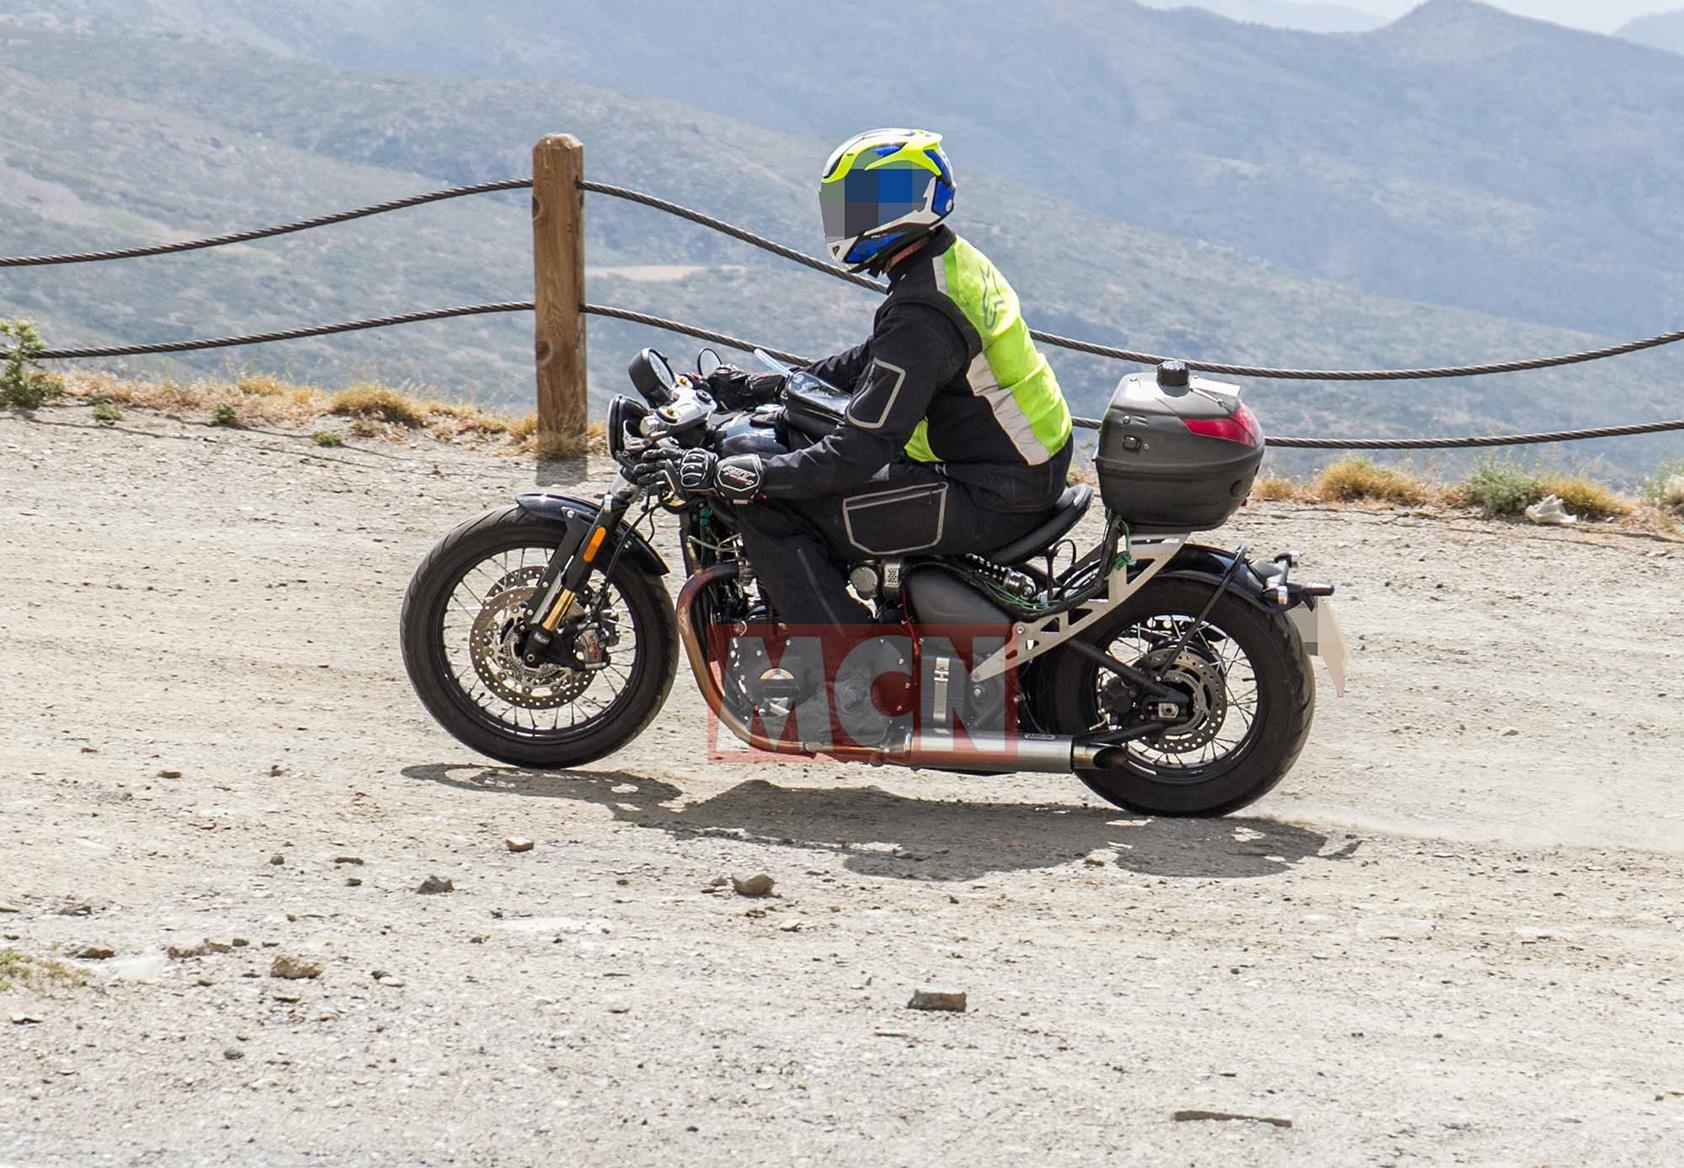 A left turn on the Triumph Bobber spied in testing